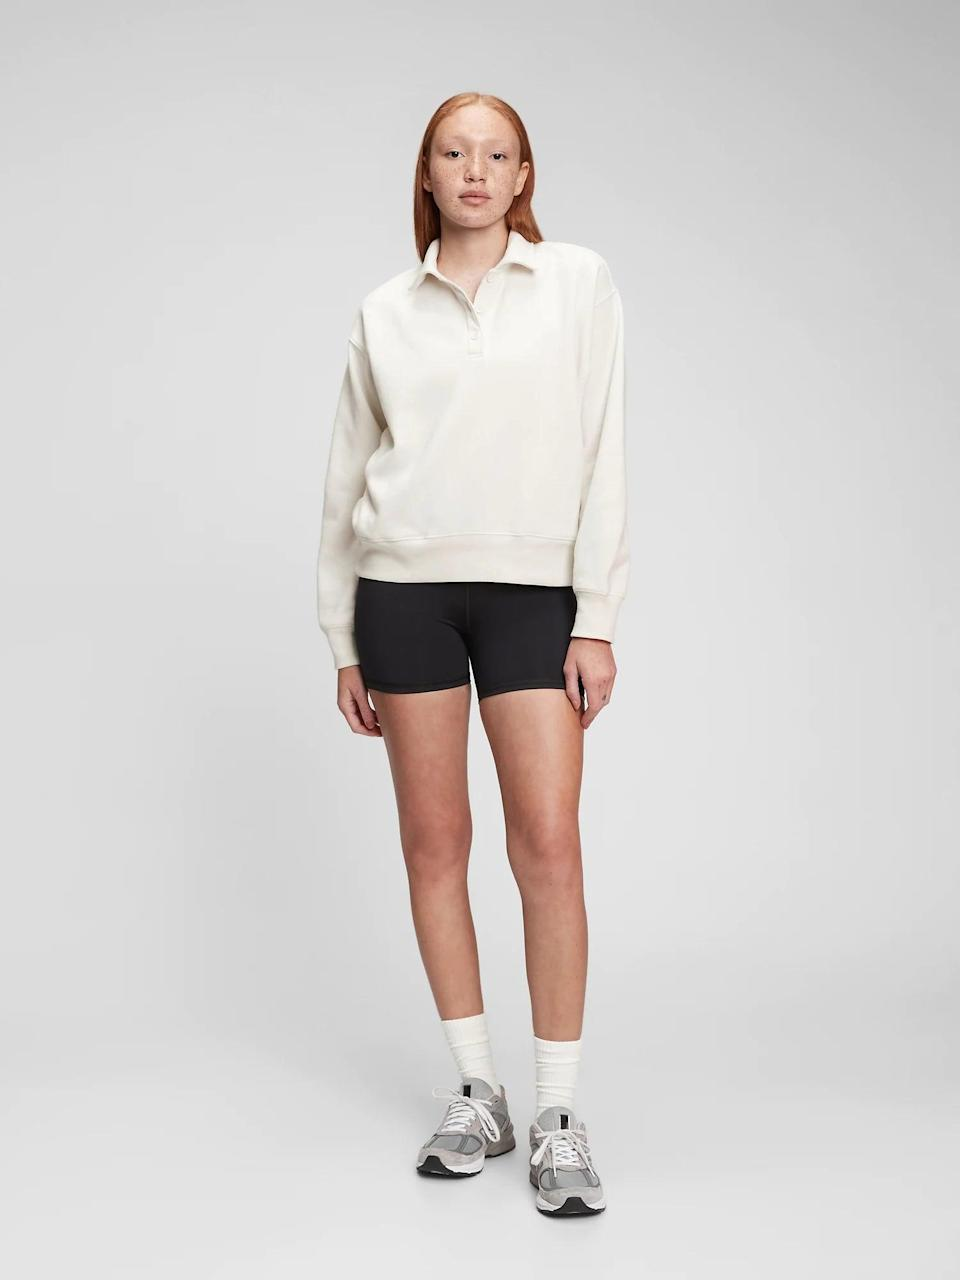 <p>Collared sweatshirts are having a moment right now, and we're not mad about it. This <span>Gap Vintage Soft Henley Collar Sweatshirt</span> ($43, originally $55) is so polished, but still cozy.</p>